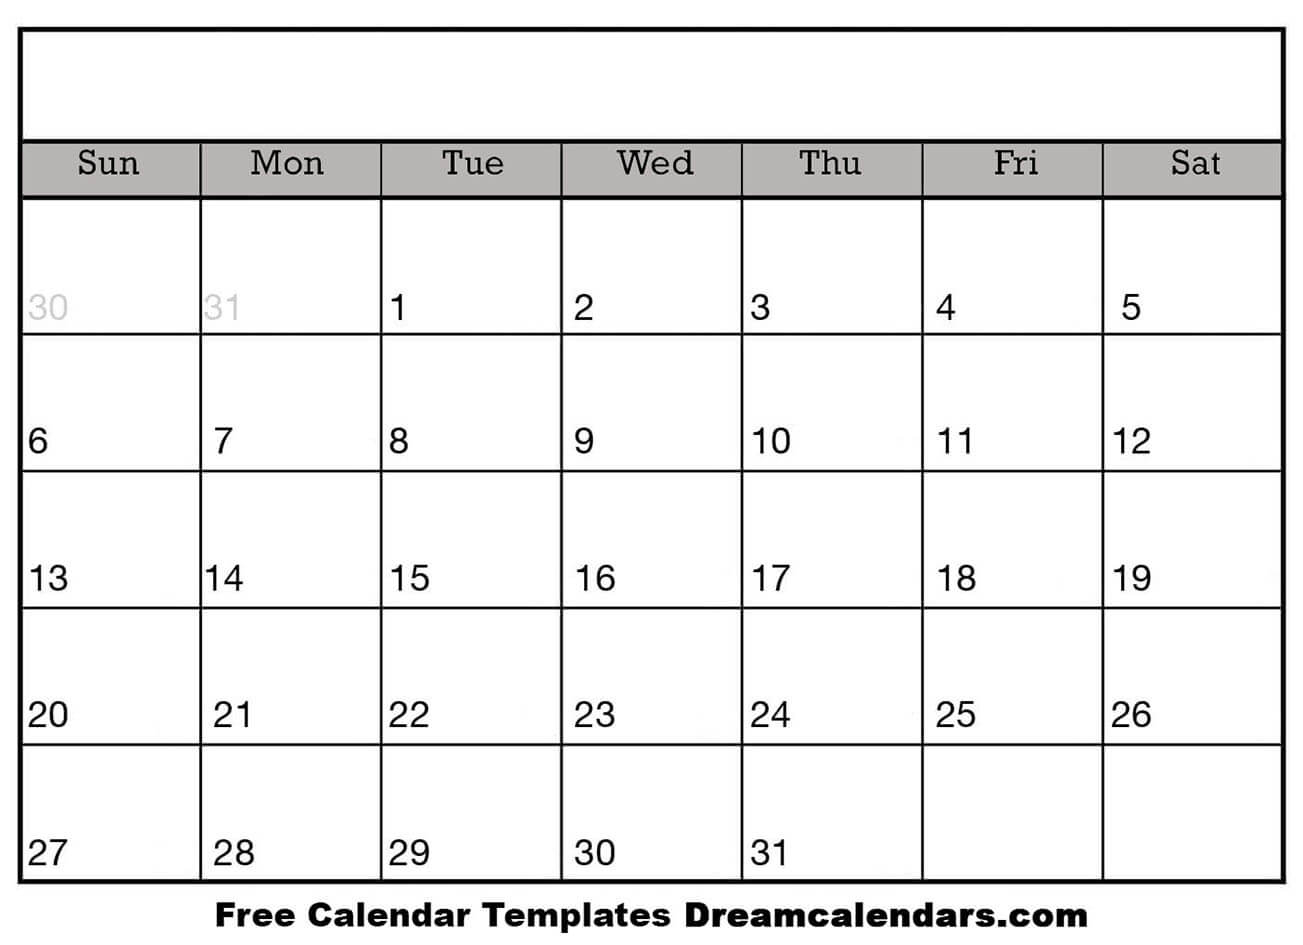 Printable Blank Calendar - Dream Calendars intended for Blank Calendar To Fill In Free